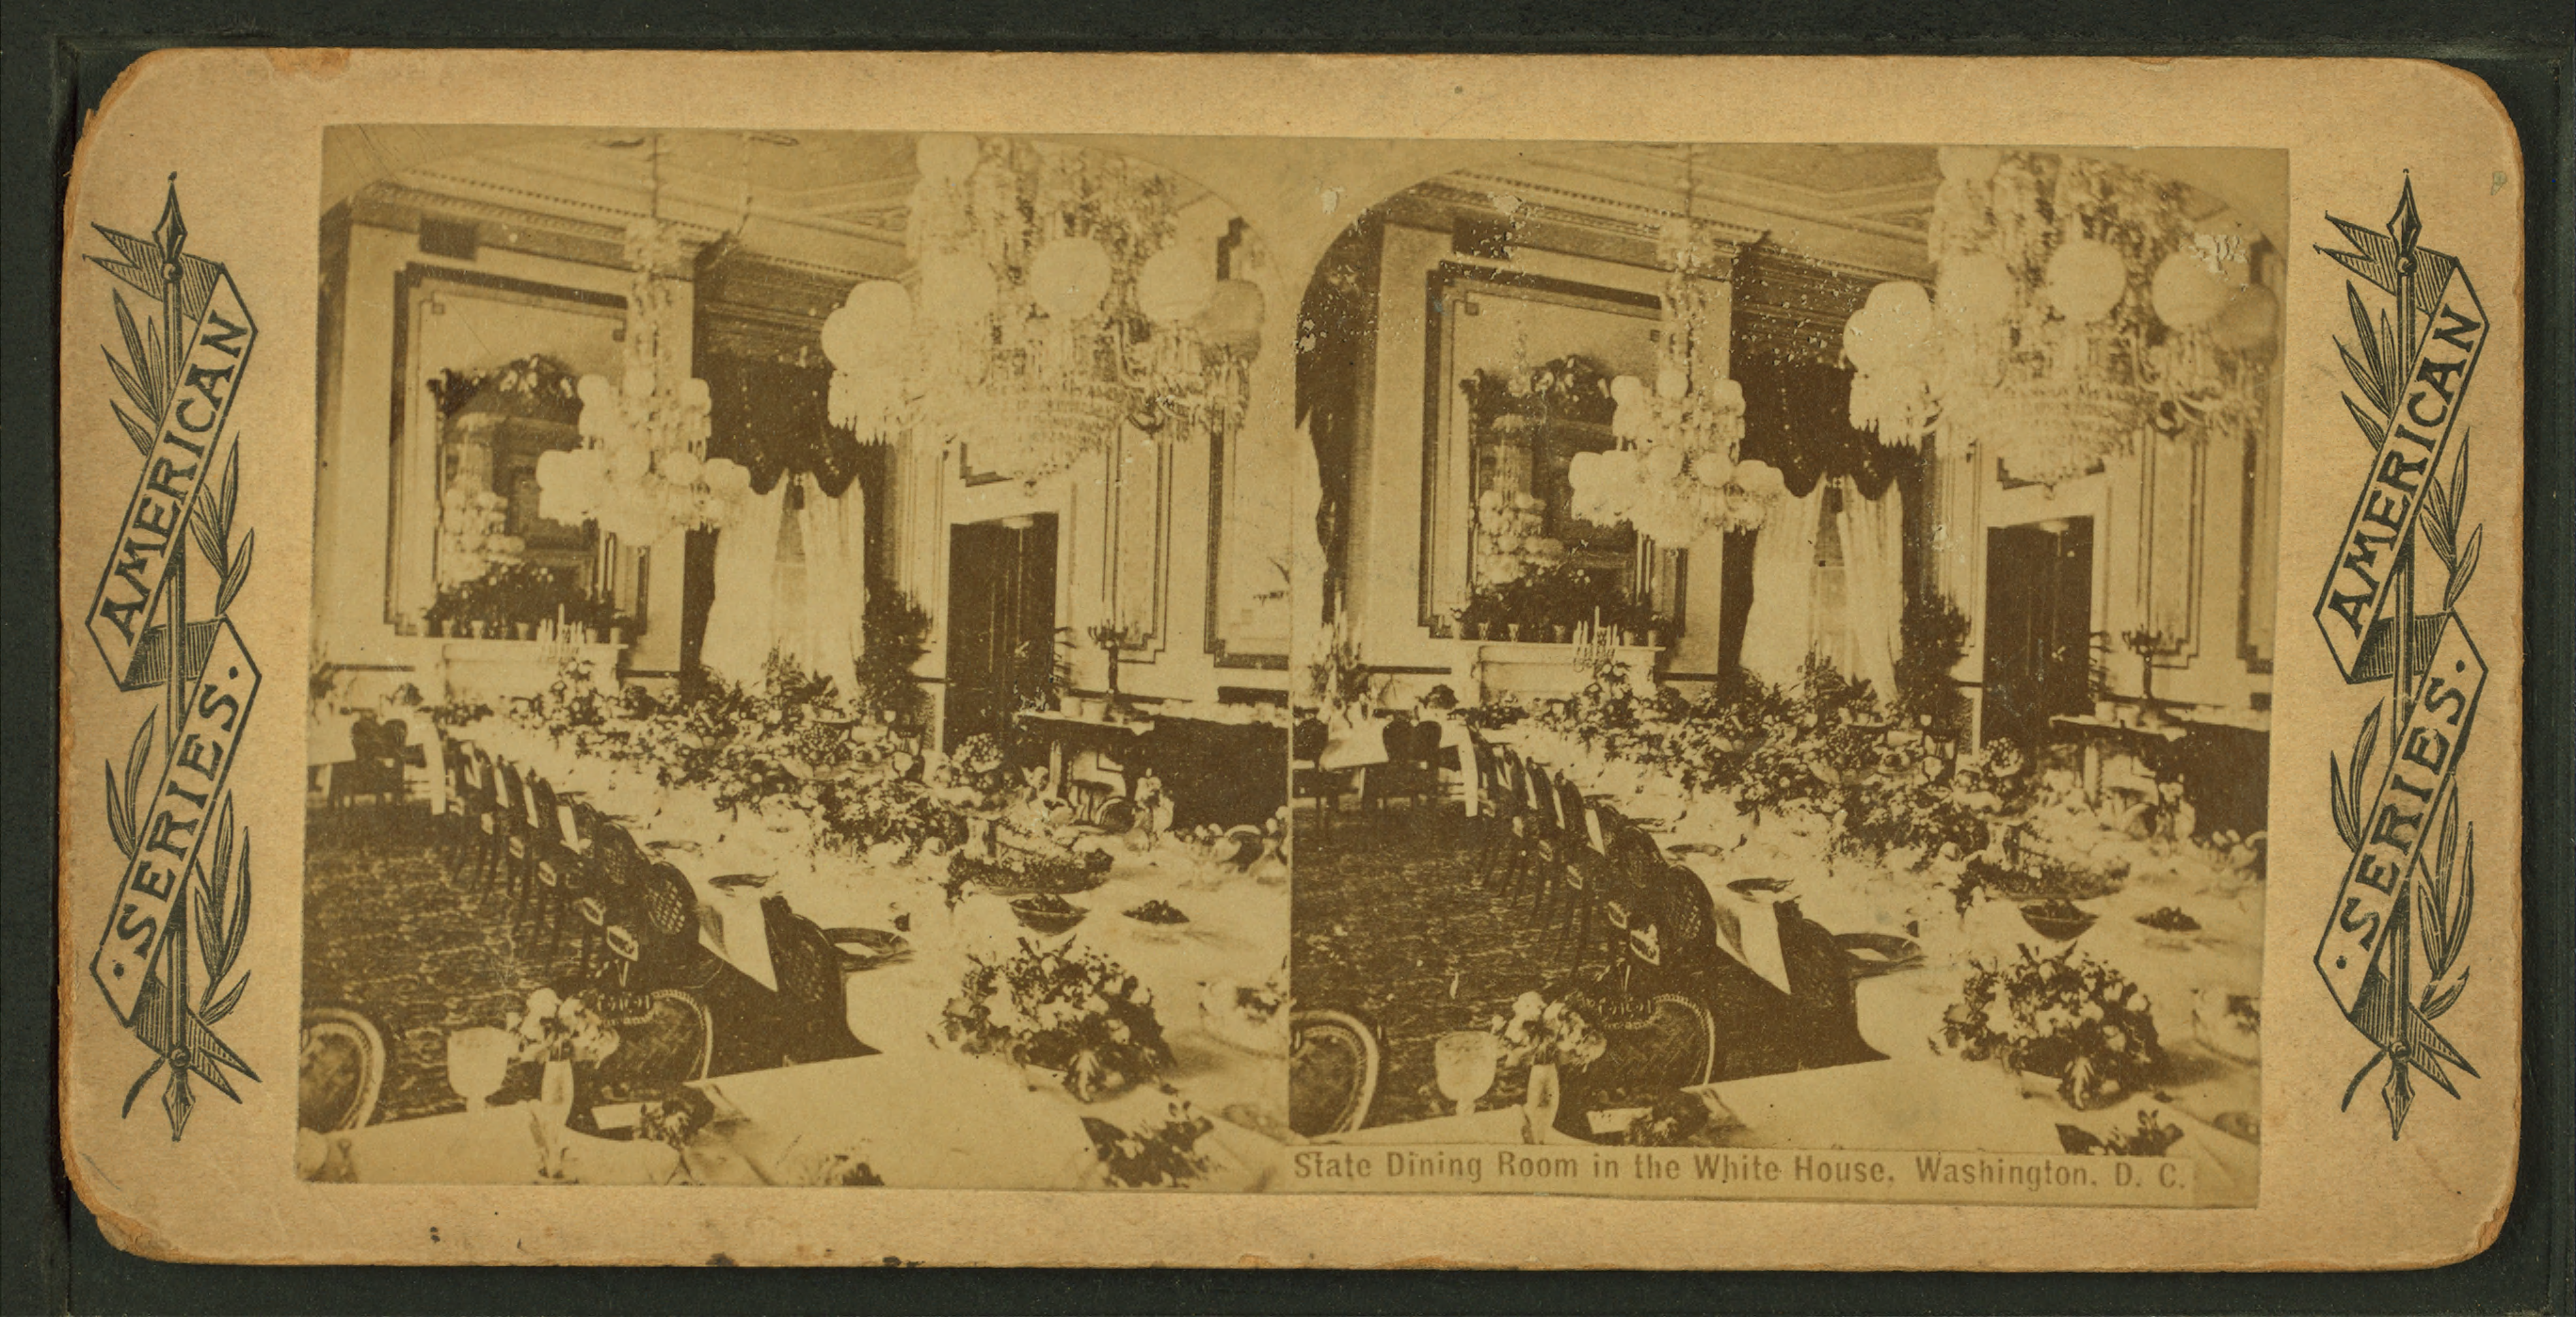 File state dining room in the white house washington d c for Dining room c house of commons